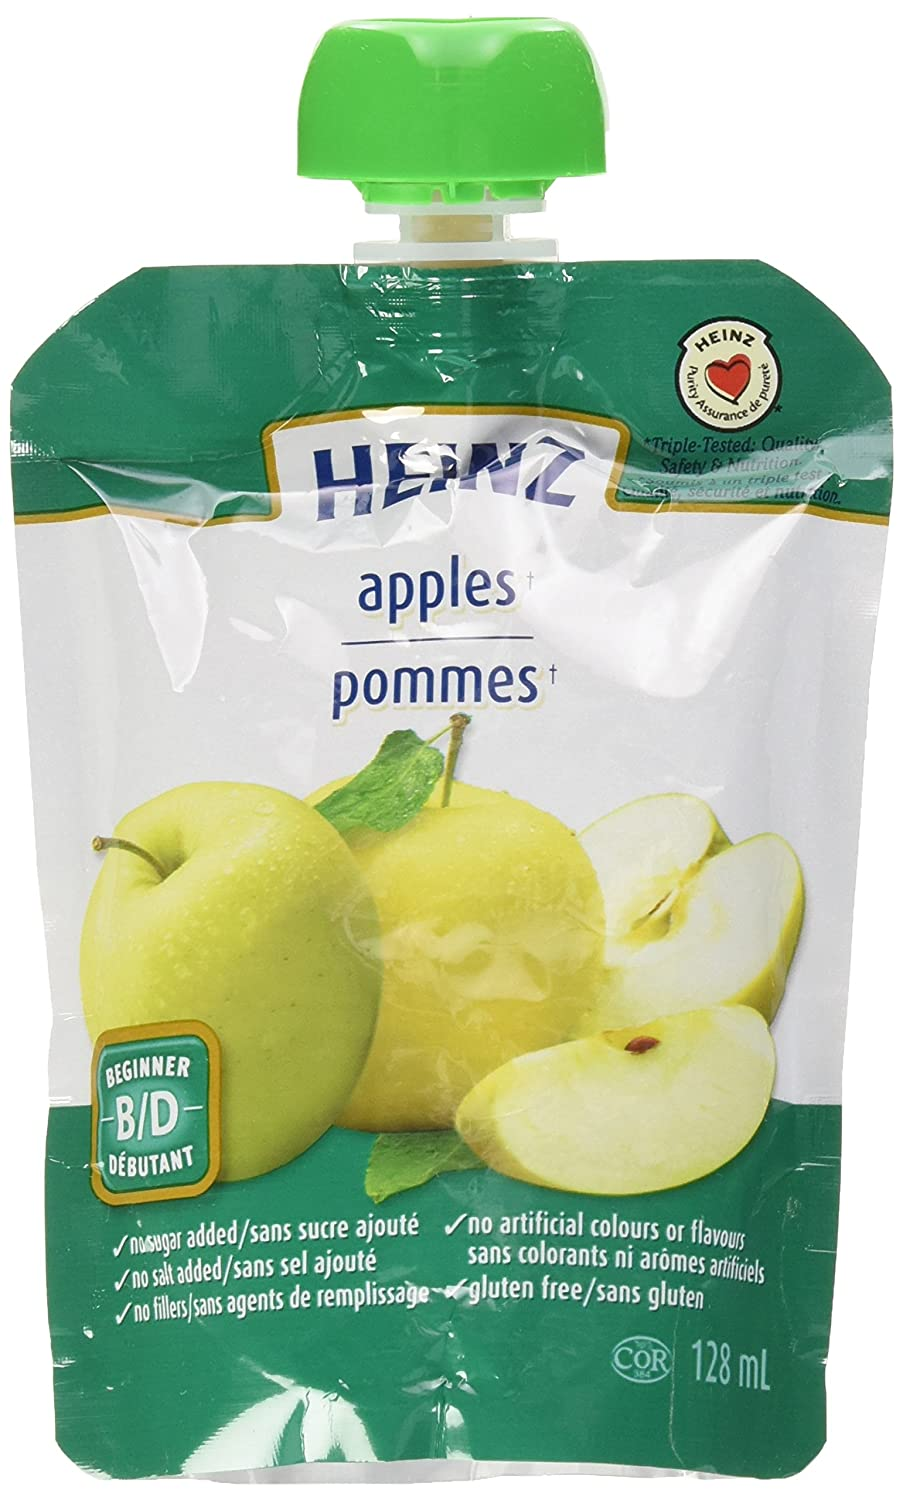 HEINZ Beginner - Strained Pear Pouch, 6 Pack, 128ML Each Kraft Heinz Canada ULC